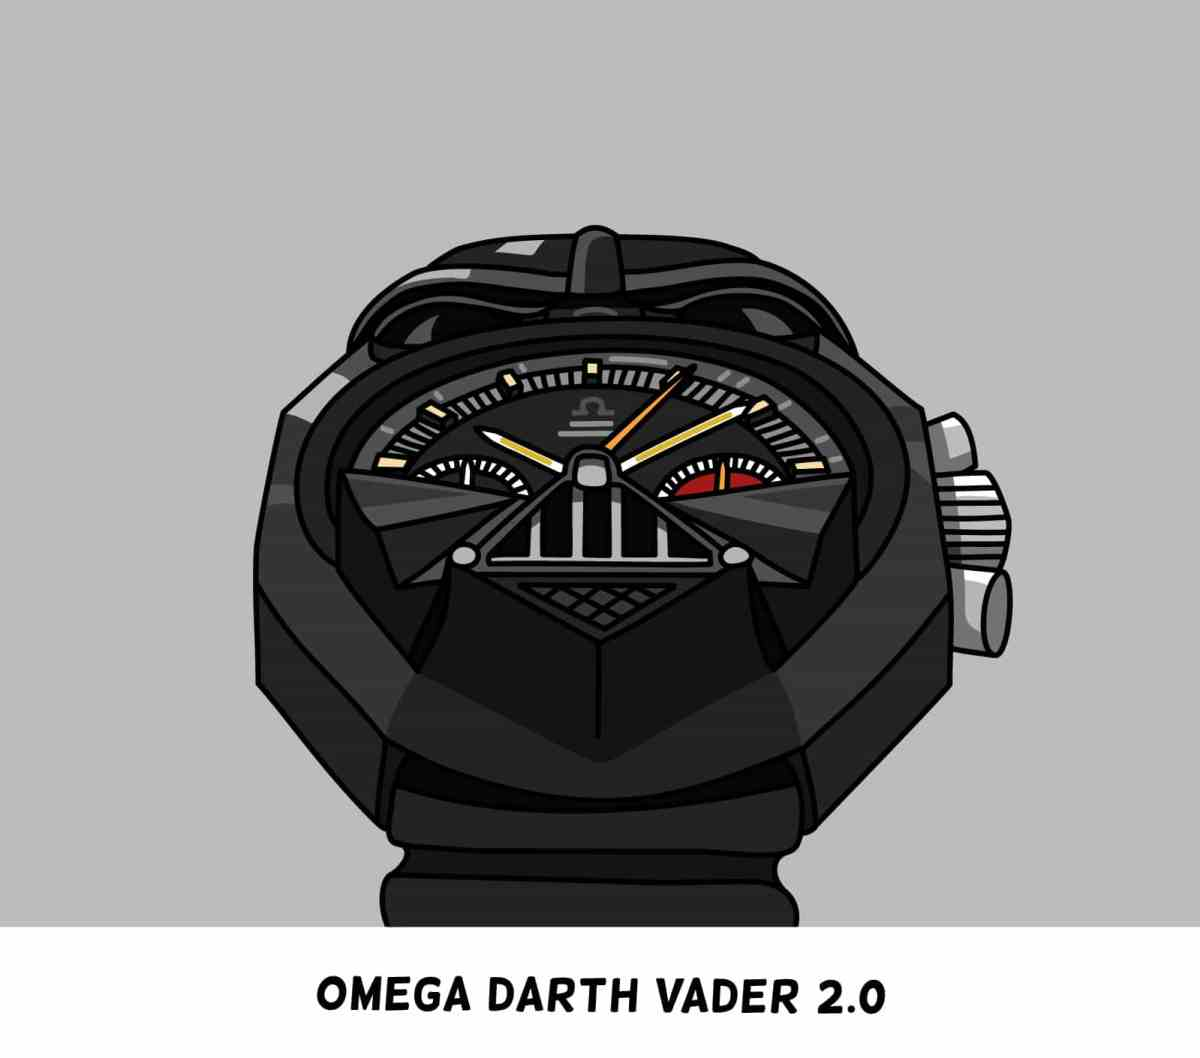 Omega Darth Vader cartoon